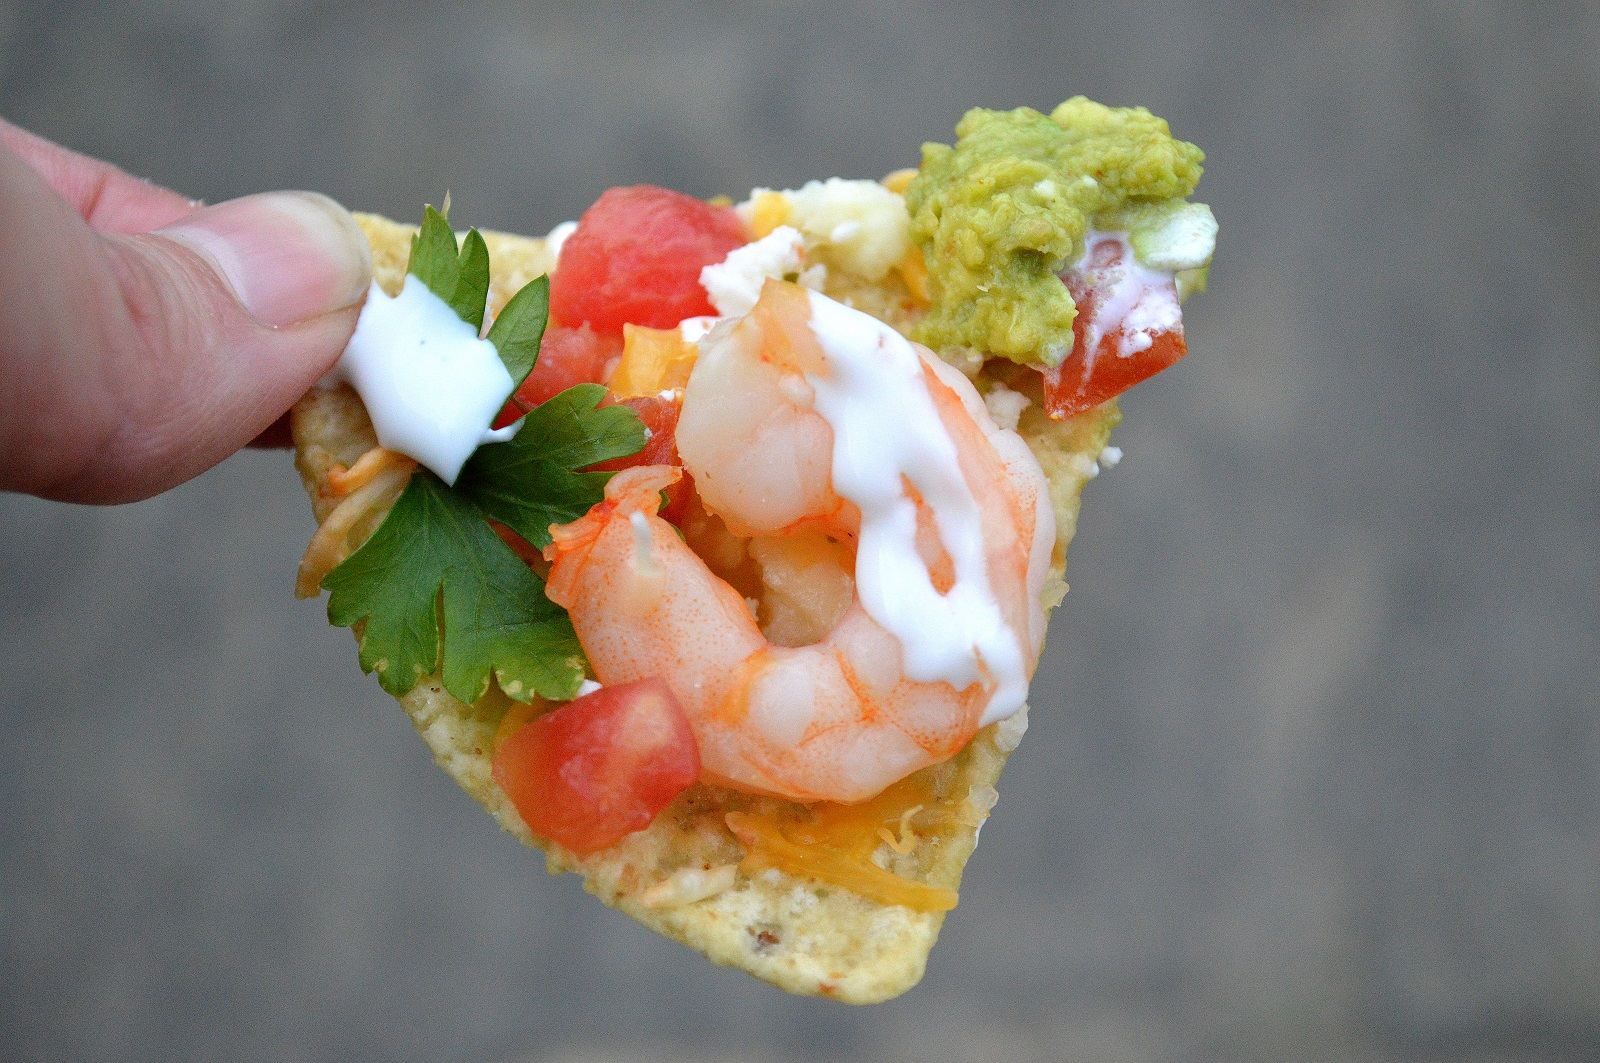 Shrimp Nachos! Why go out when you can EASILY make these at home??